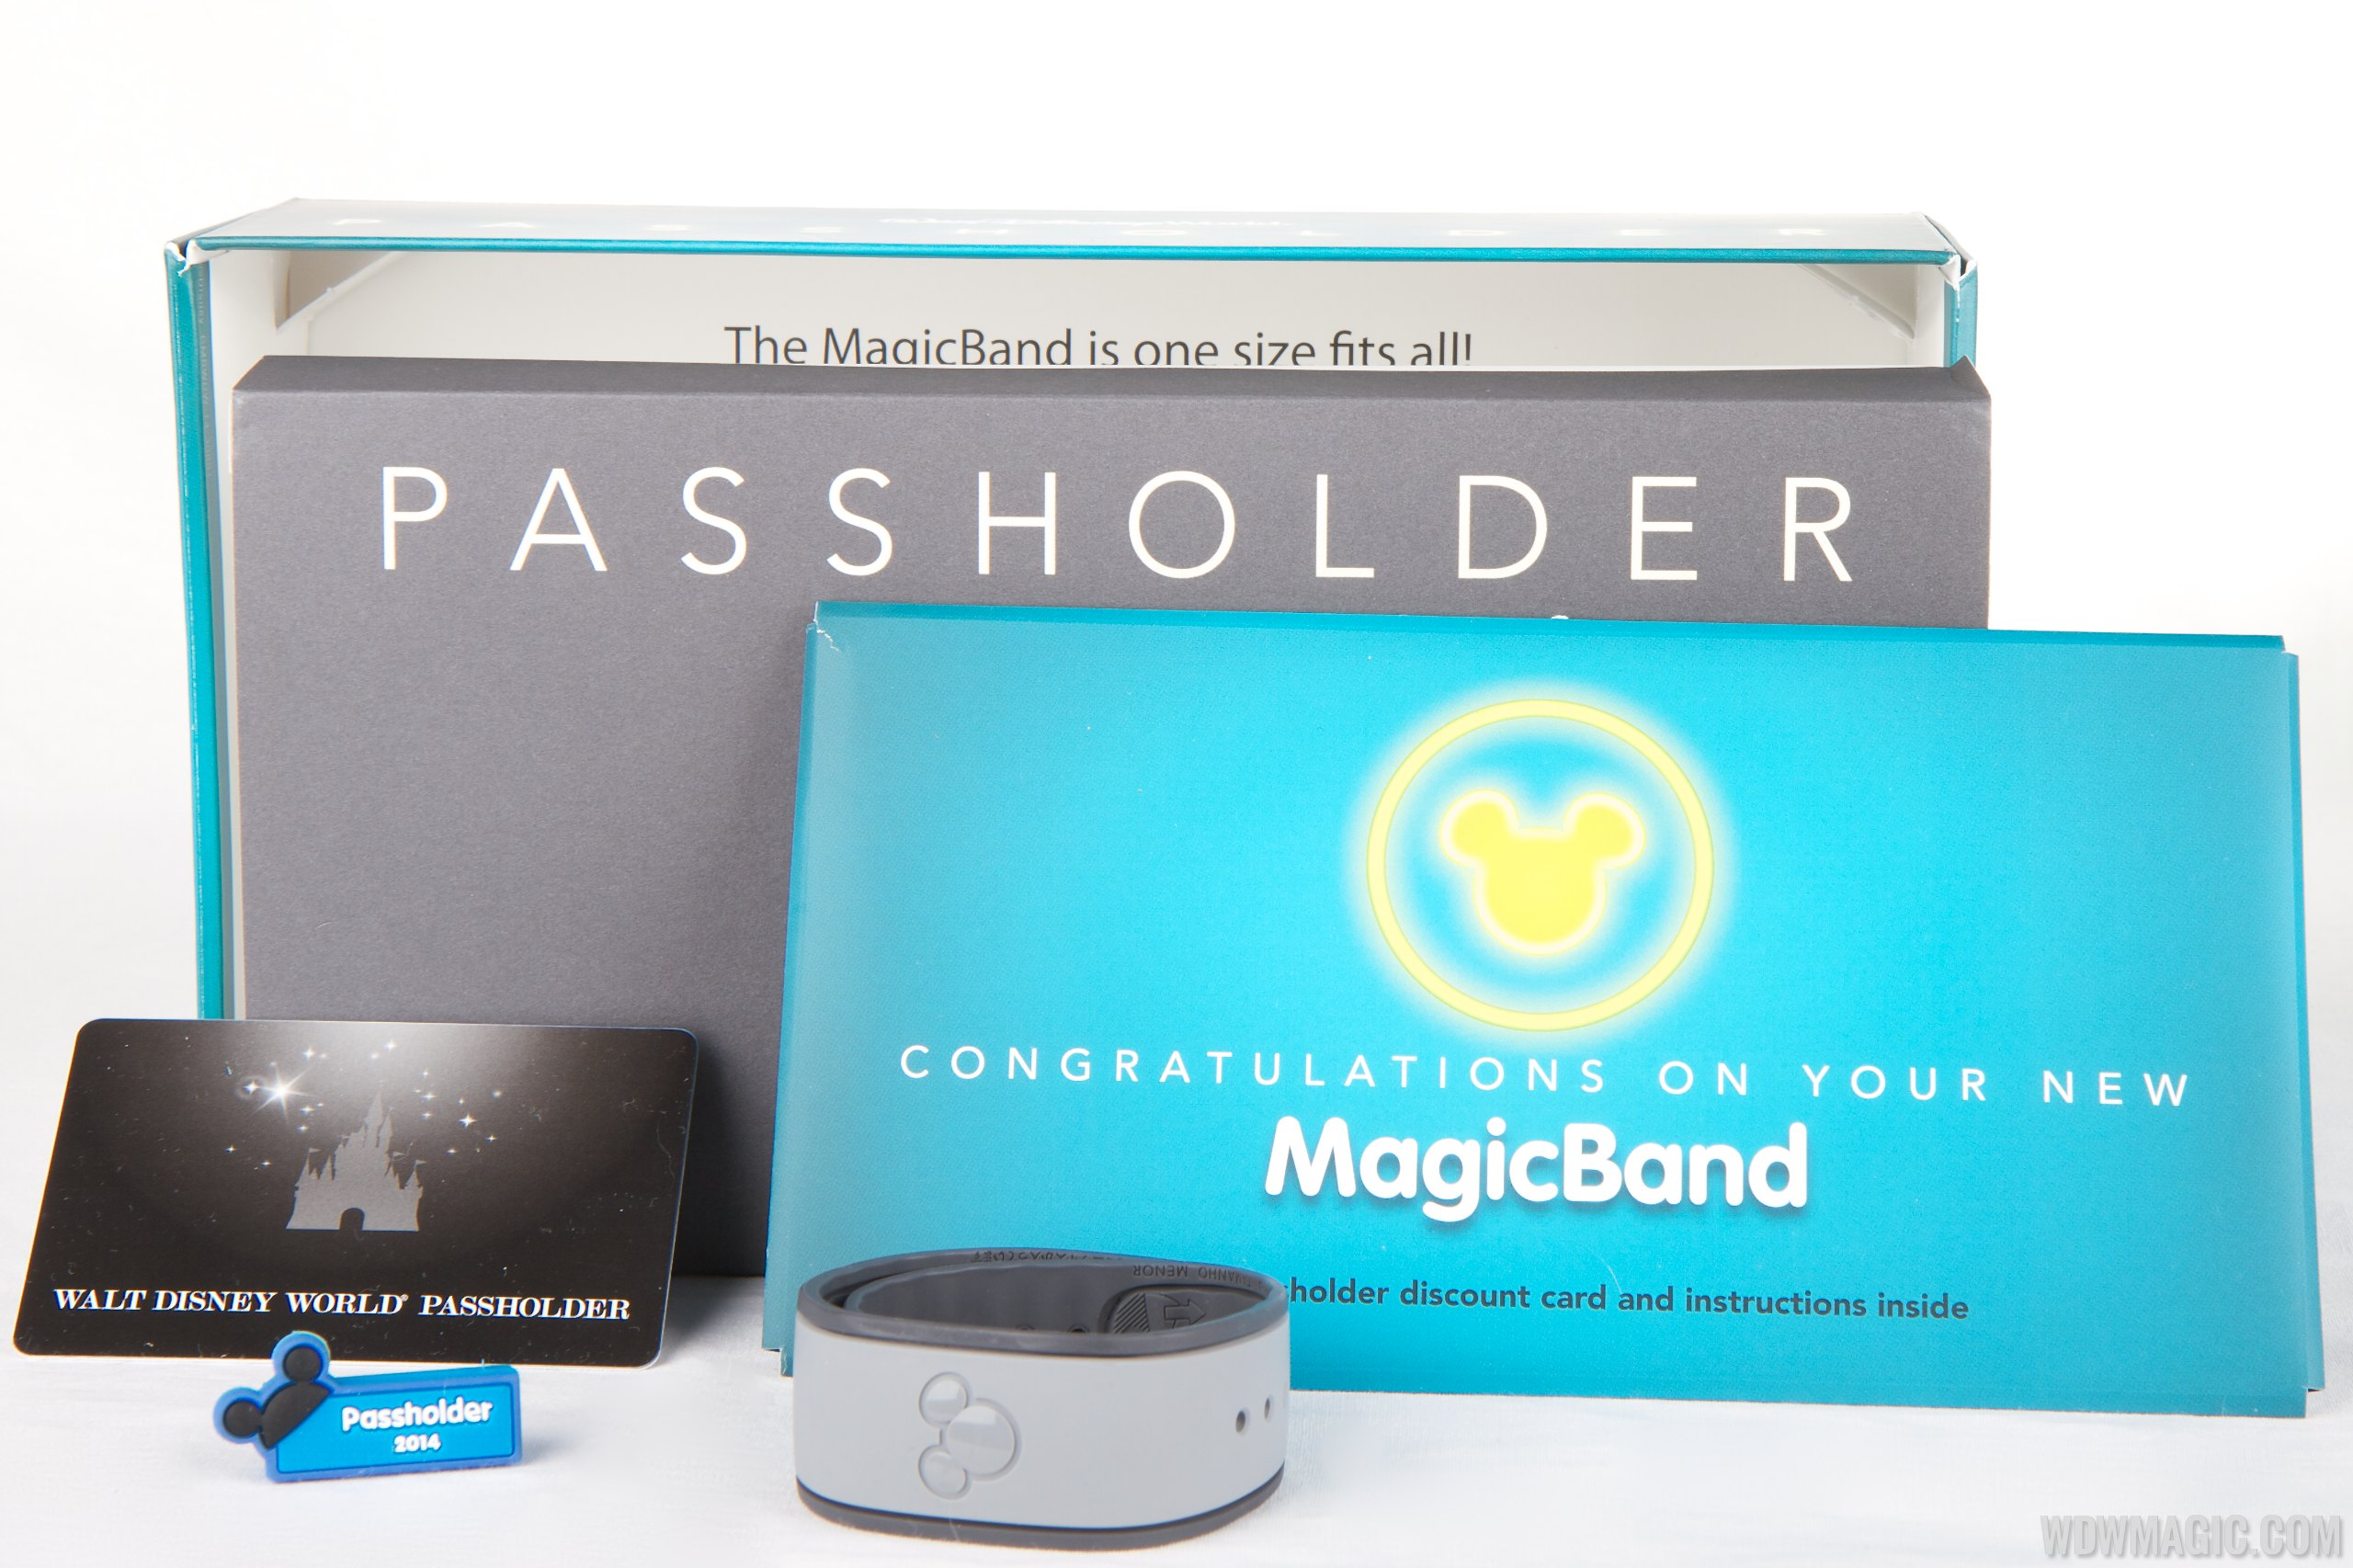 Passholder MagicBand with MagicSlider, discount card and instructions